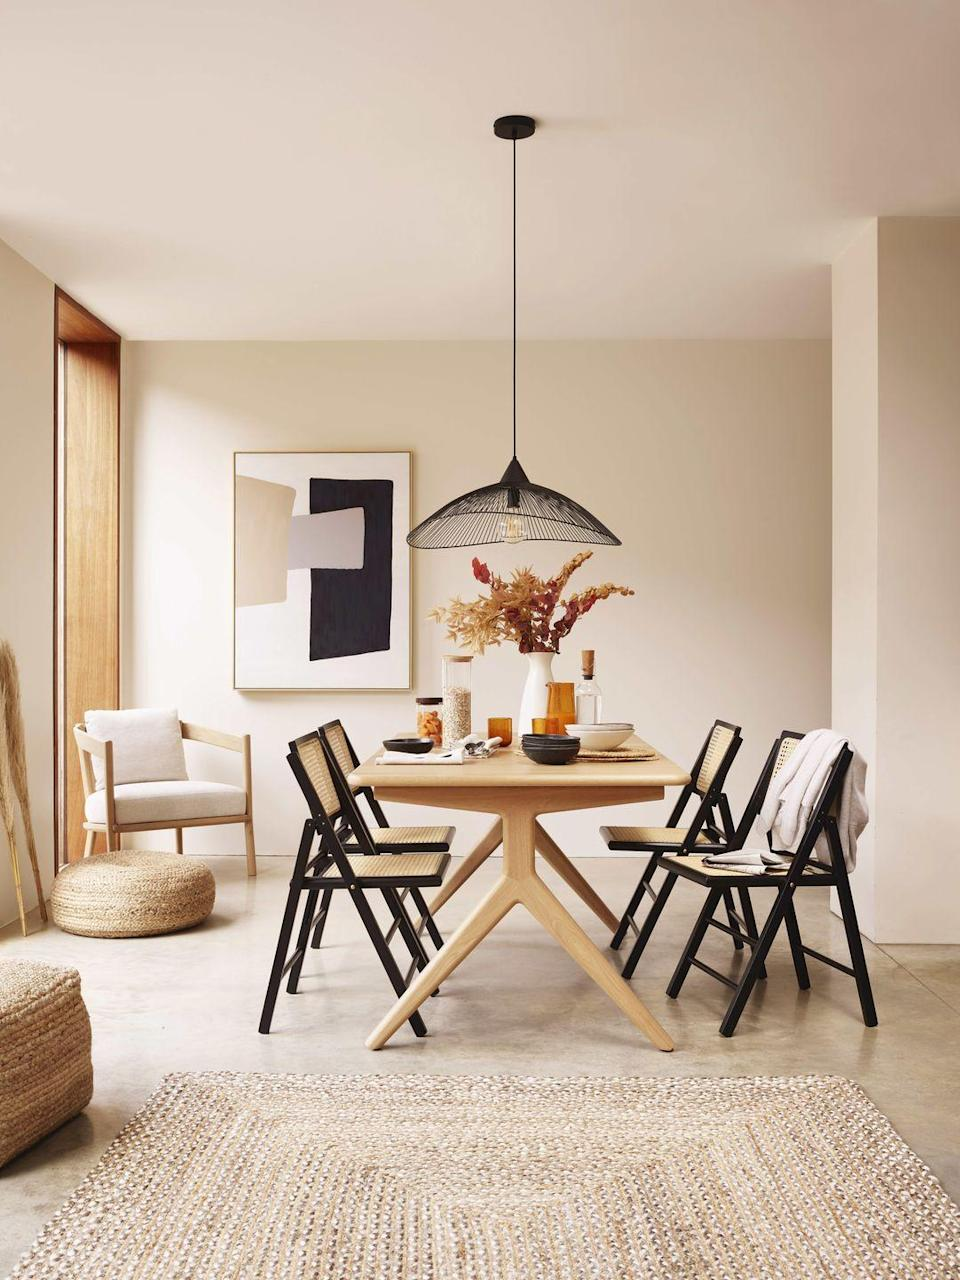 """<p>A hard-working design, 'Poise' can accommodate up to eight people thanks to the extendable panel that's stored within the table's frame. Made from solid oak, its splayed legs and refined lines give a subtle nod to Scandi style and create a timeless silhouette. Dining table, £999; chairs, £99 each; ceiling light, £175, all <a href=""""https://www.johnlewis.com/"""" rel=""""nofollow noopener"""" target=""""_blank"""" data-ylk=""""slk:johnlewis.com"""" class=""""link rapid-noclick-resp"""">johnlewis.com</a></p>"""